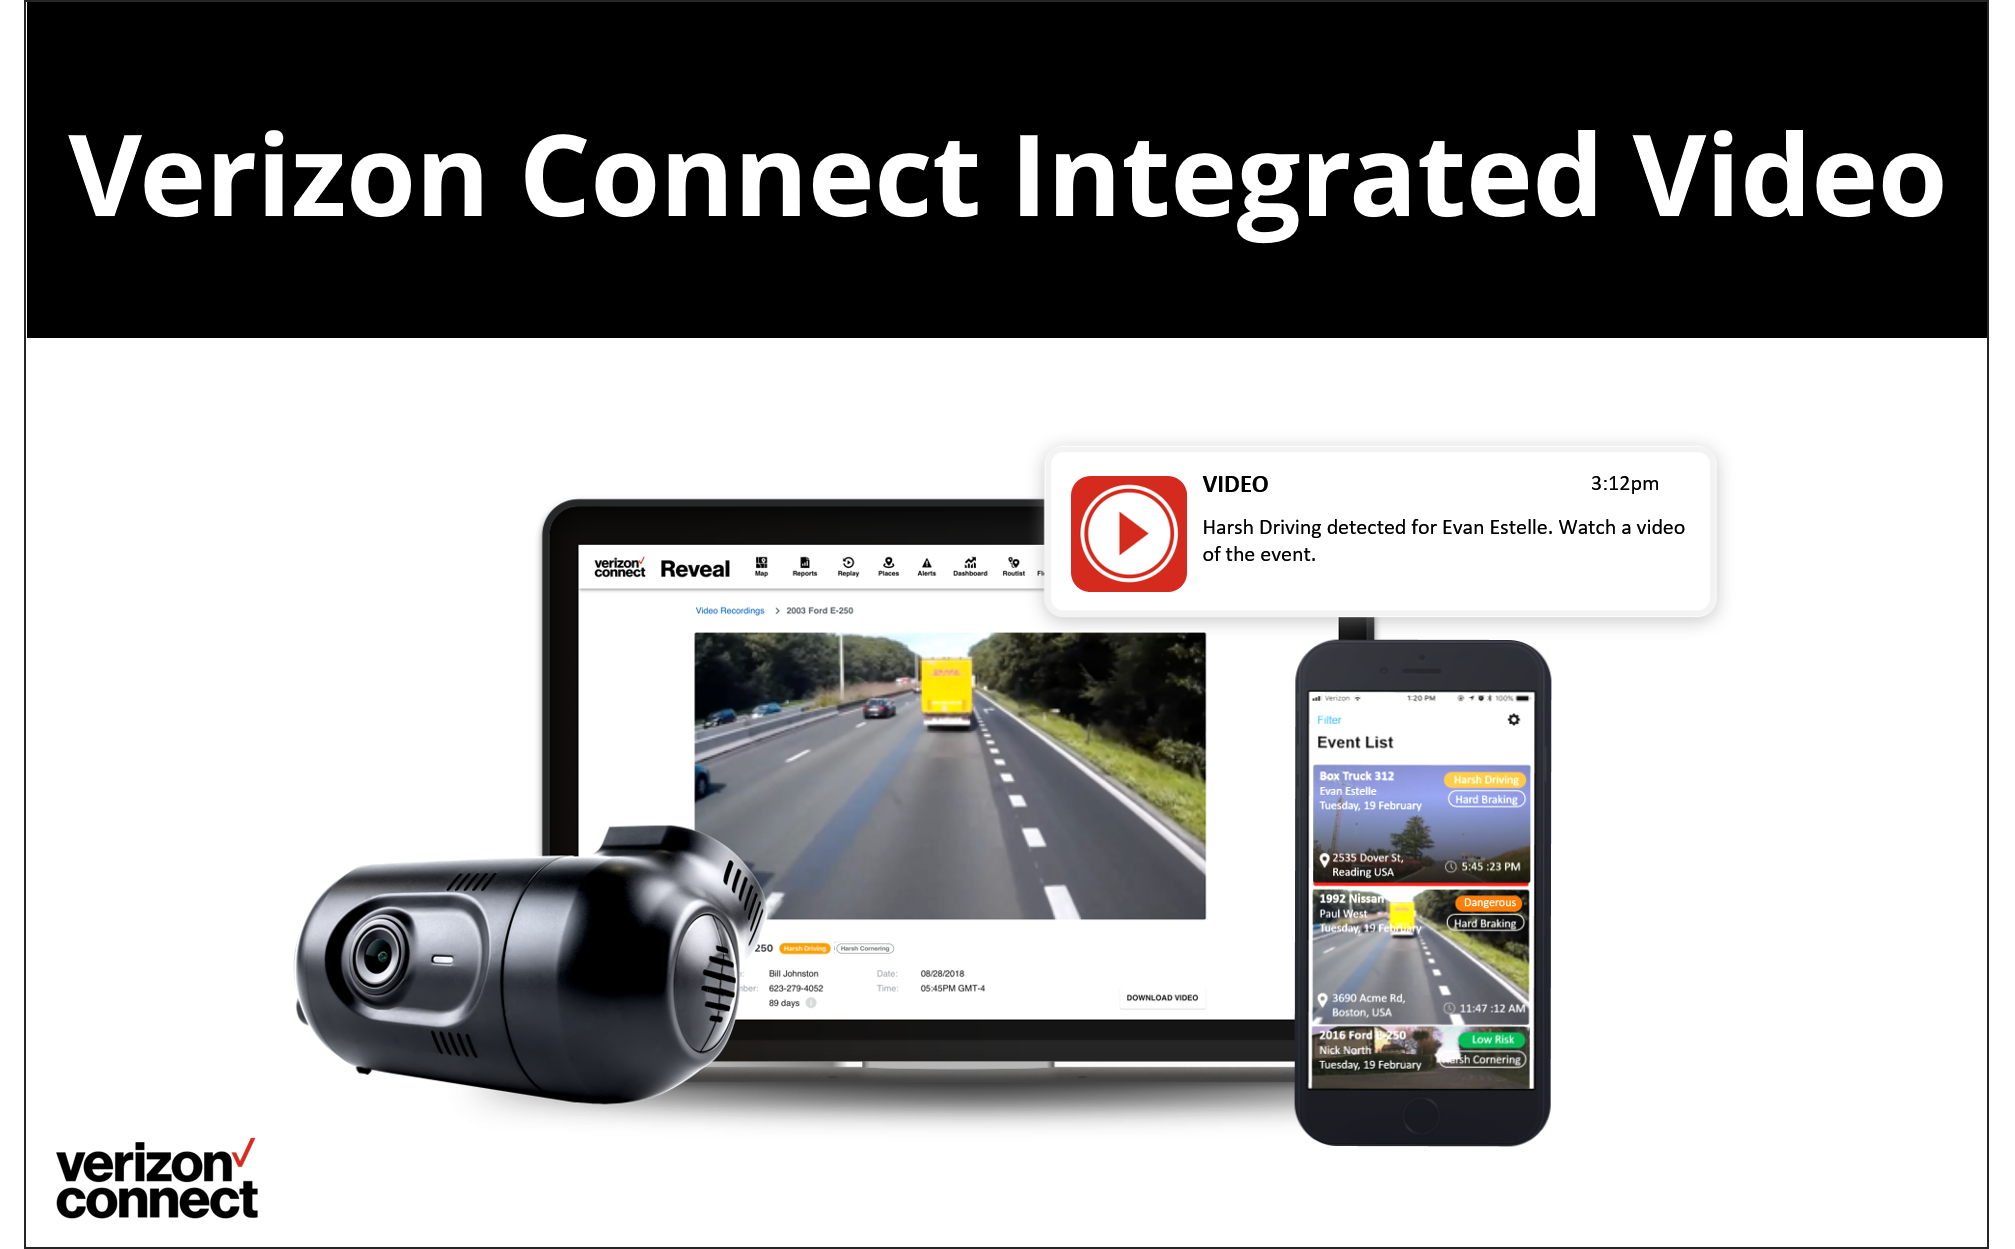 Verizon Connect Integrated Video